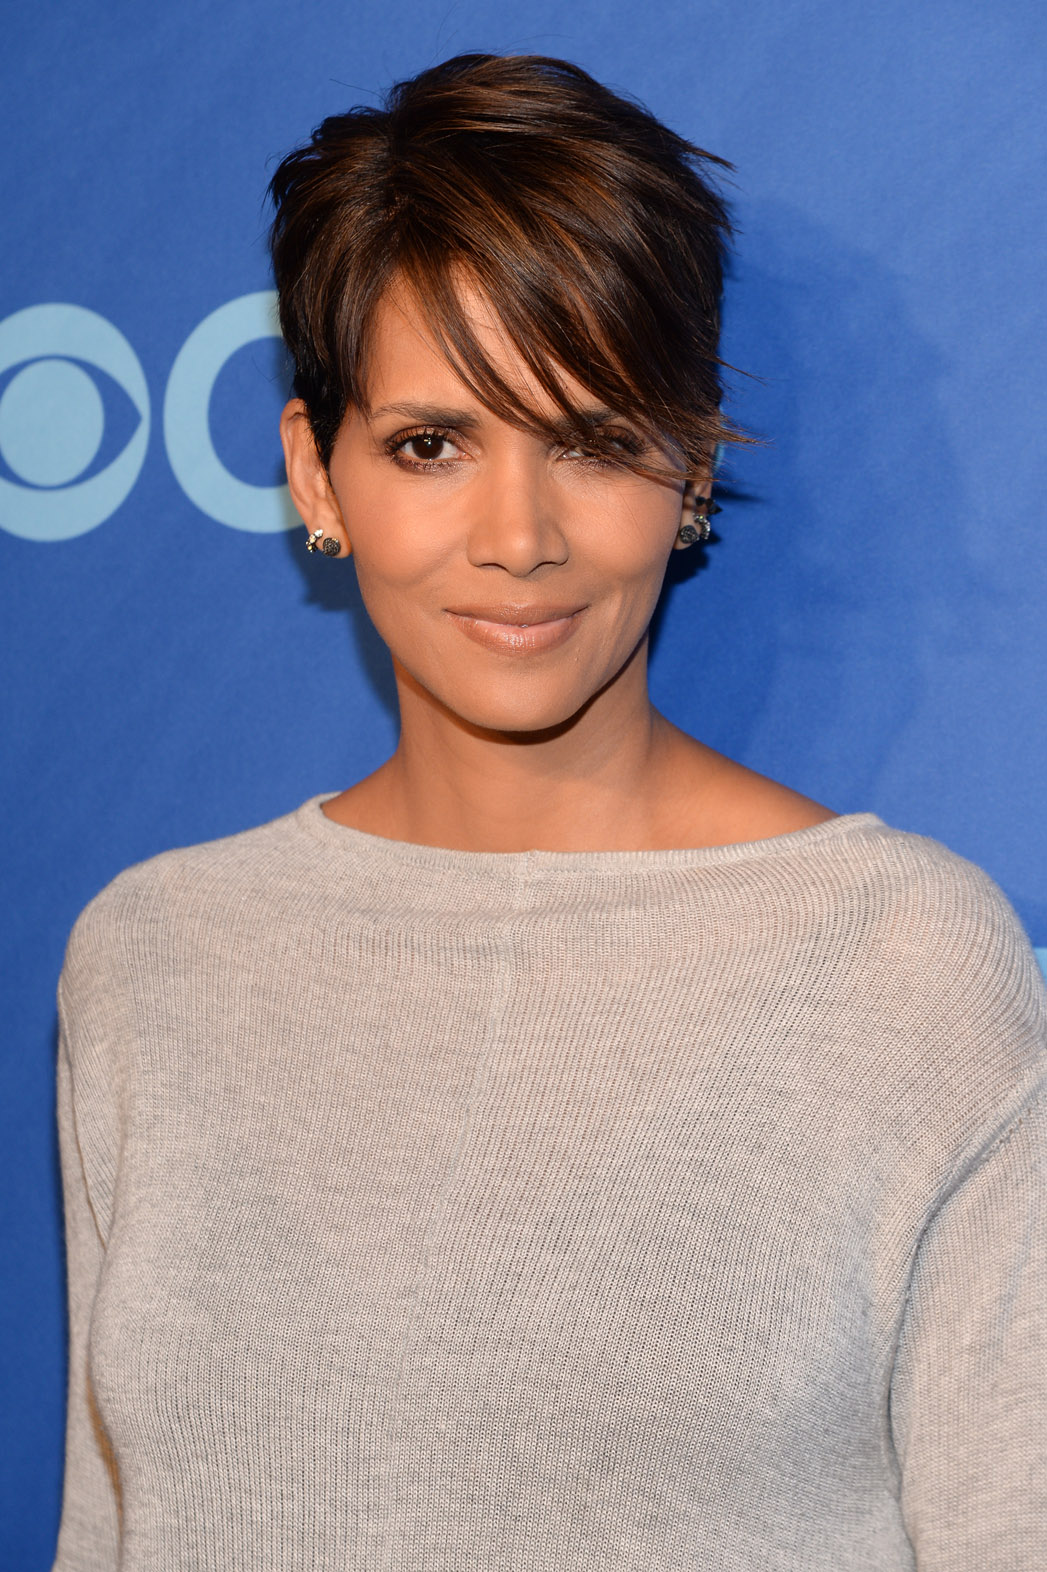 Halle Berry CBS Upfronts - P 2014